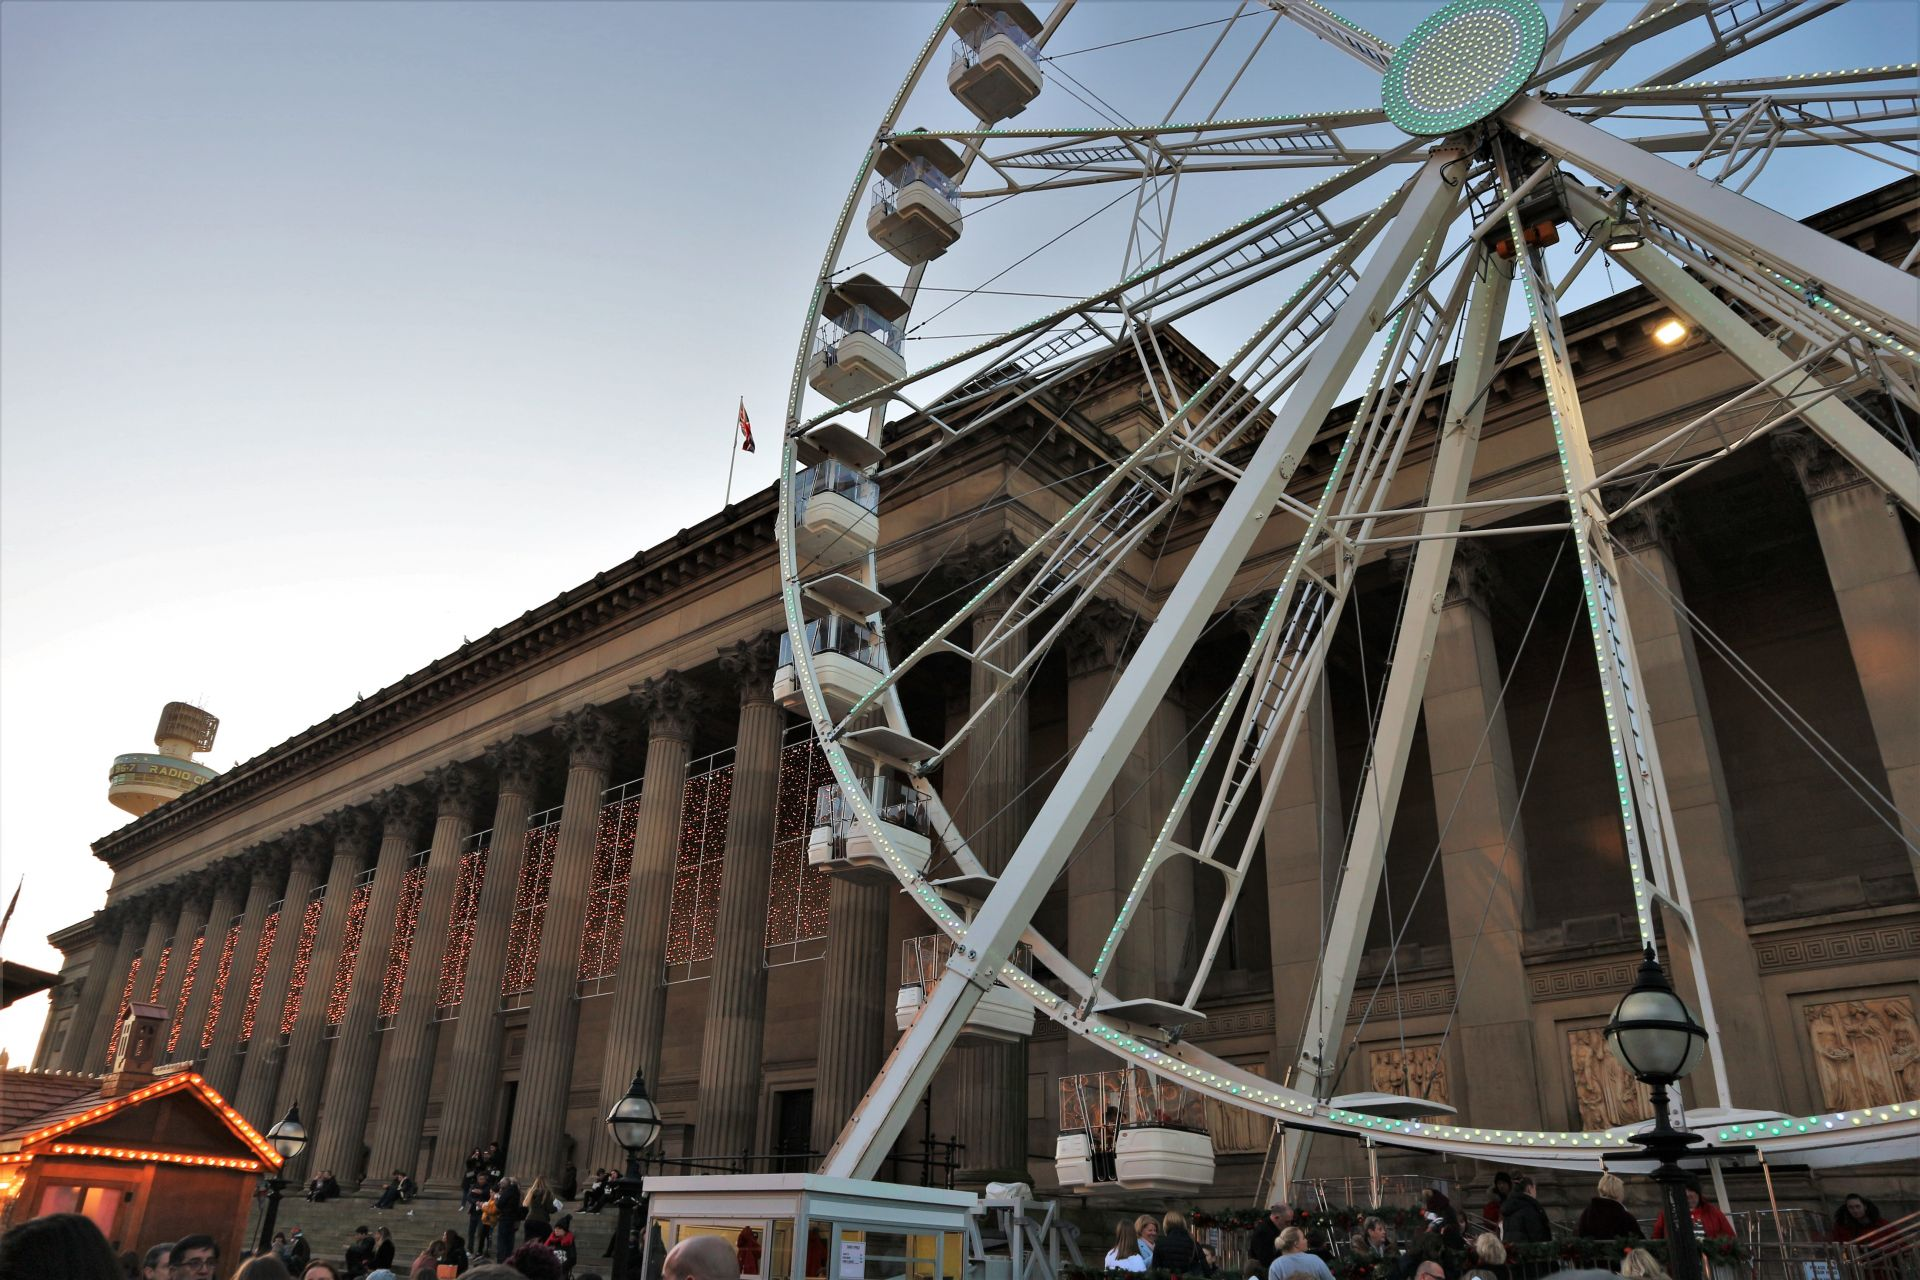 Liverpool Christmas Markets. Liverpool Life. Christmas in Liverpool. Winter time. City Blog. City Lifestyle.